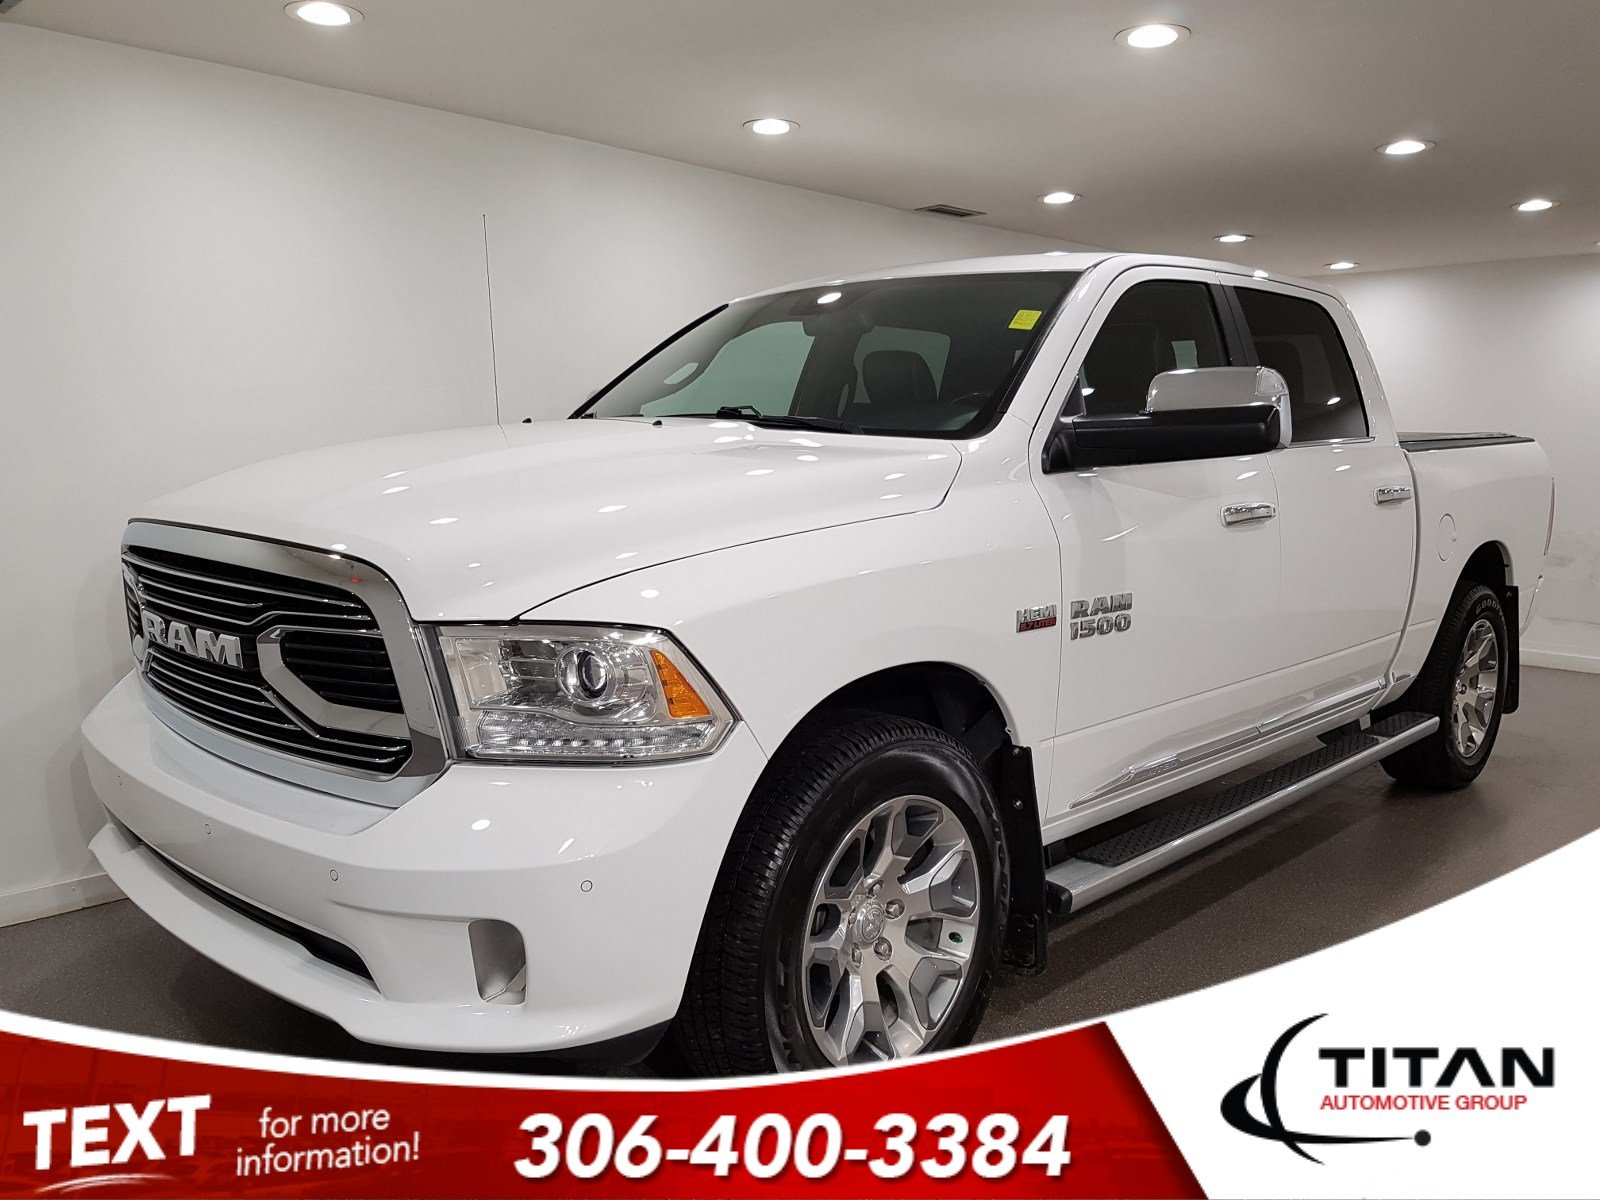 Pre-Owned 2017 Ram 1500 Limited|Laramie|V8|4x4|CAM|NAV|Leather